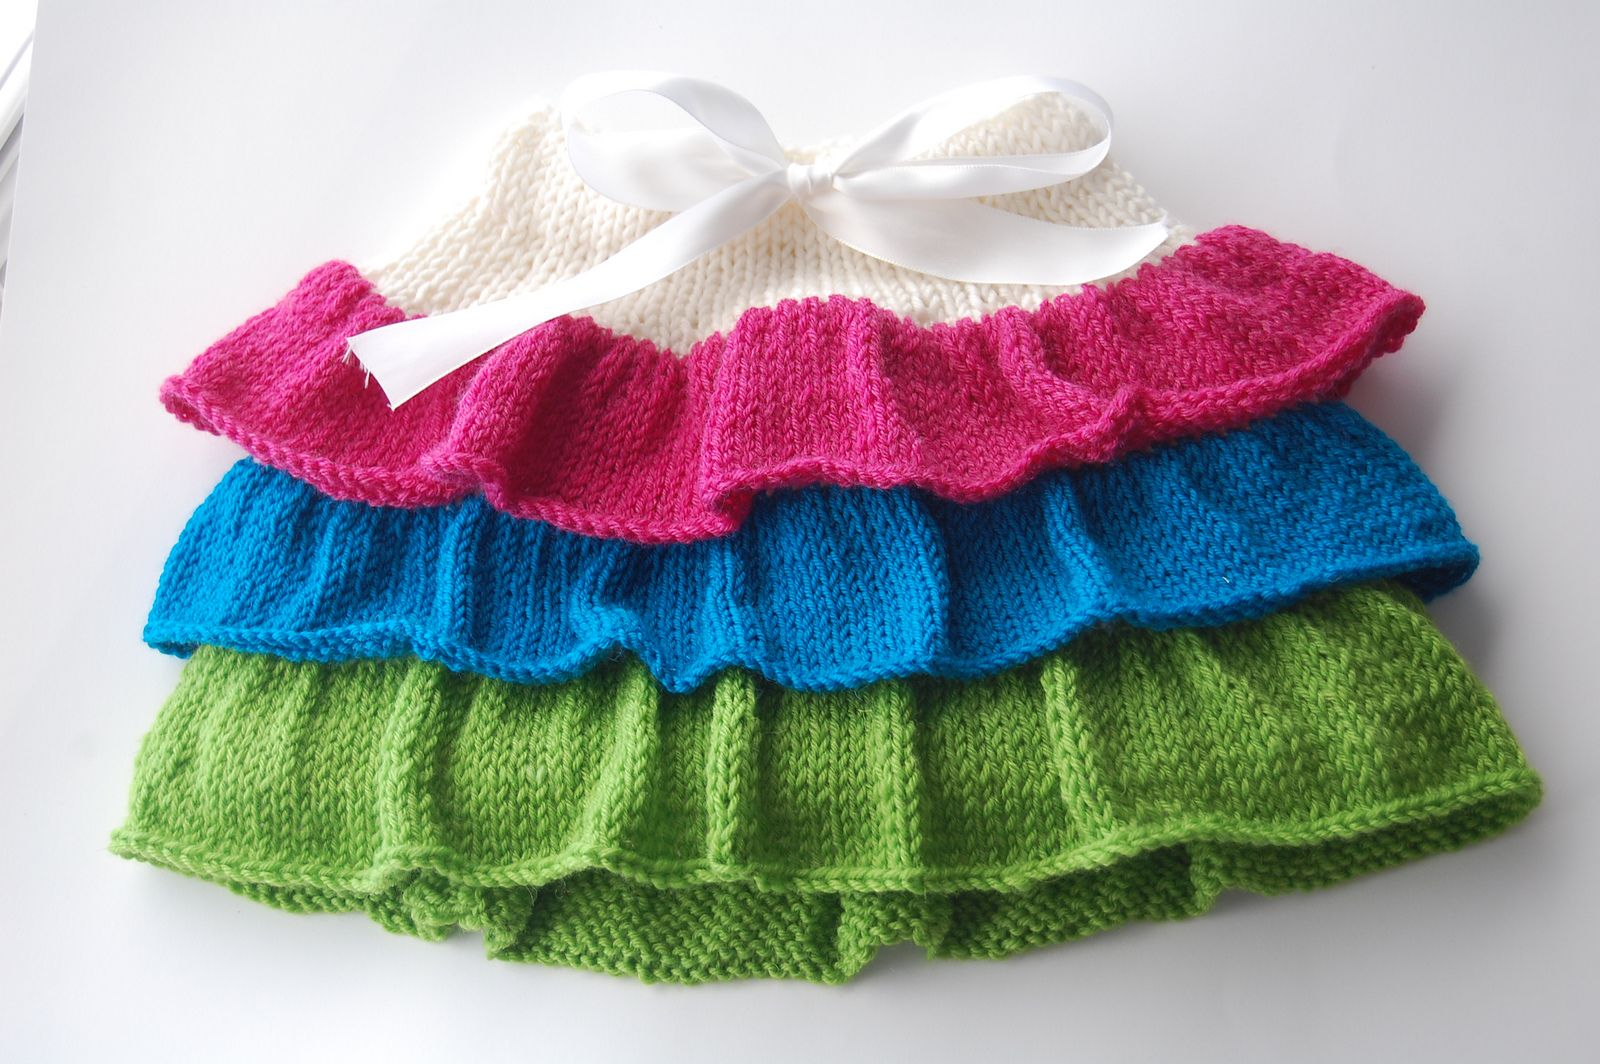 The Ruffle Skirt pattern by Claire Gentry   Ravelry, Patterns and ...